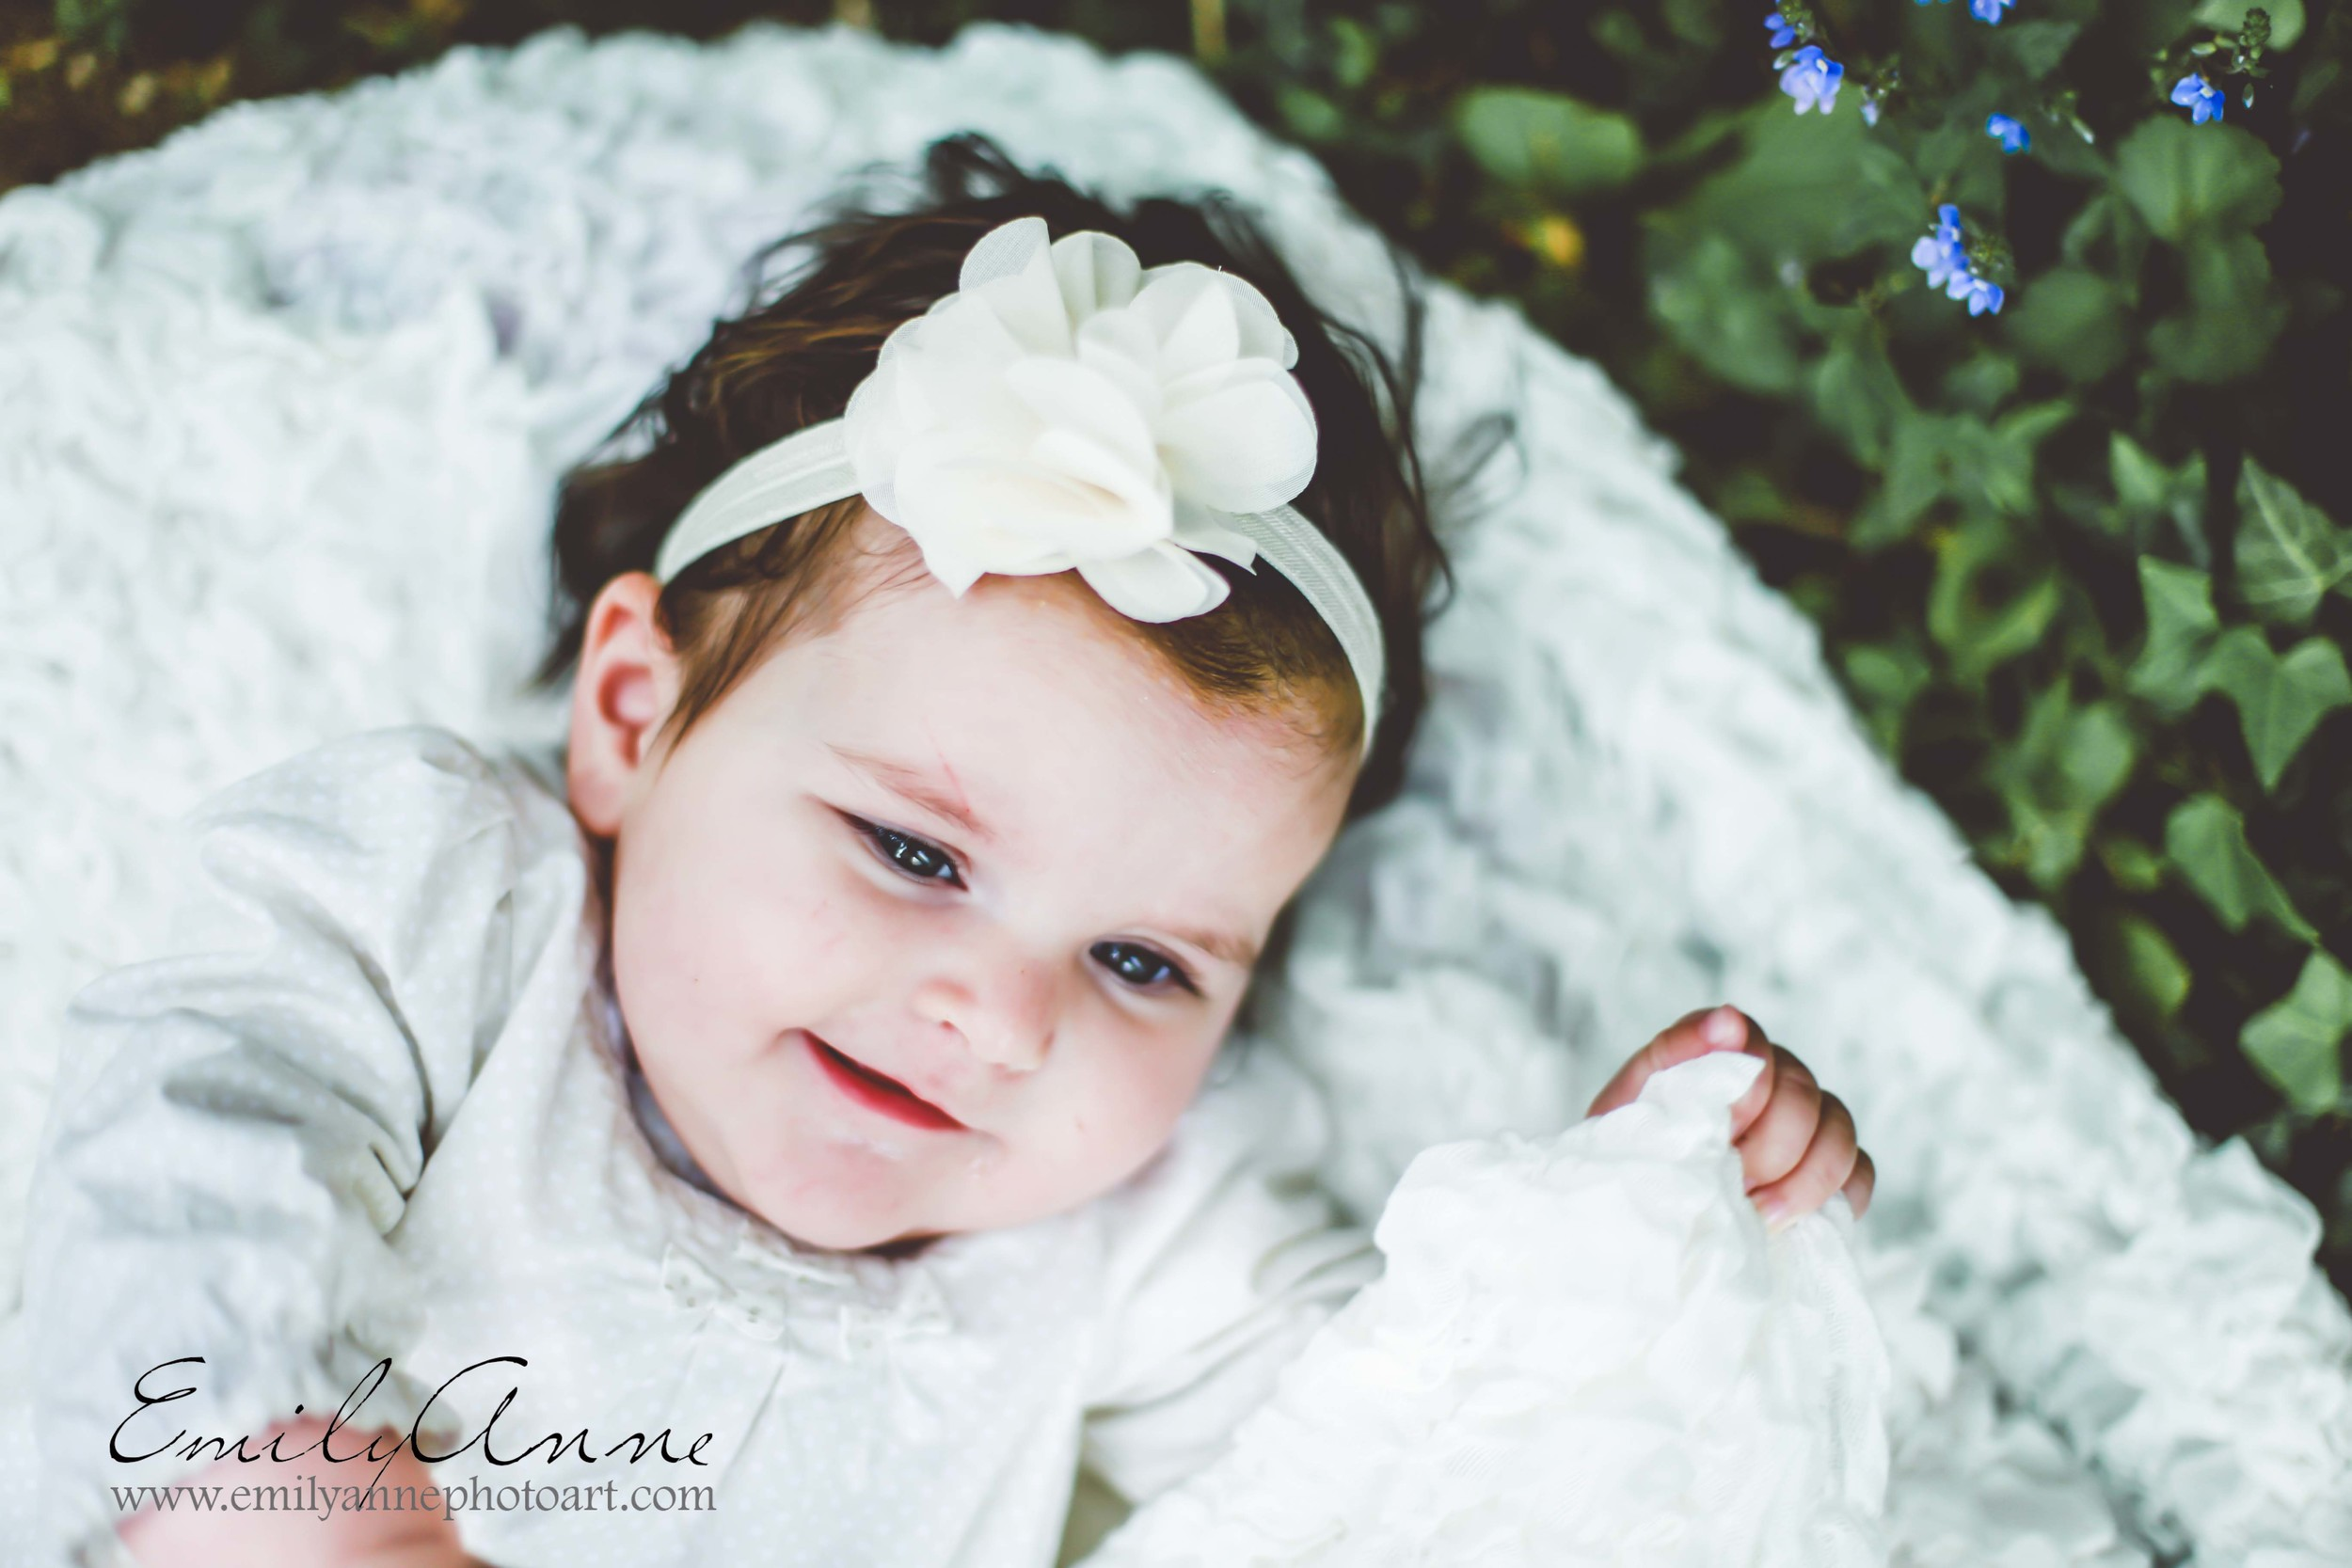 swiss family lifestyle and wedding photographer emily anne photography top nashville family and baby photographer shot in Biel (Bienne) Switzerland